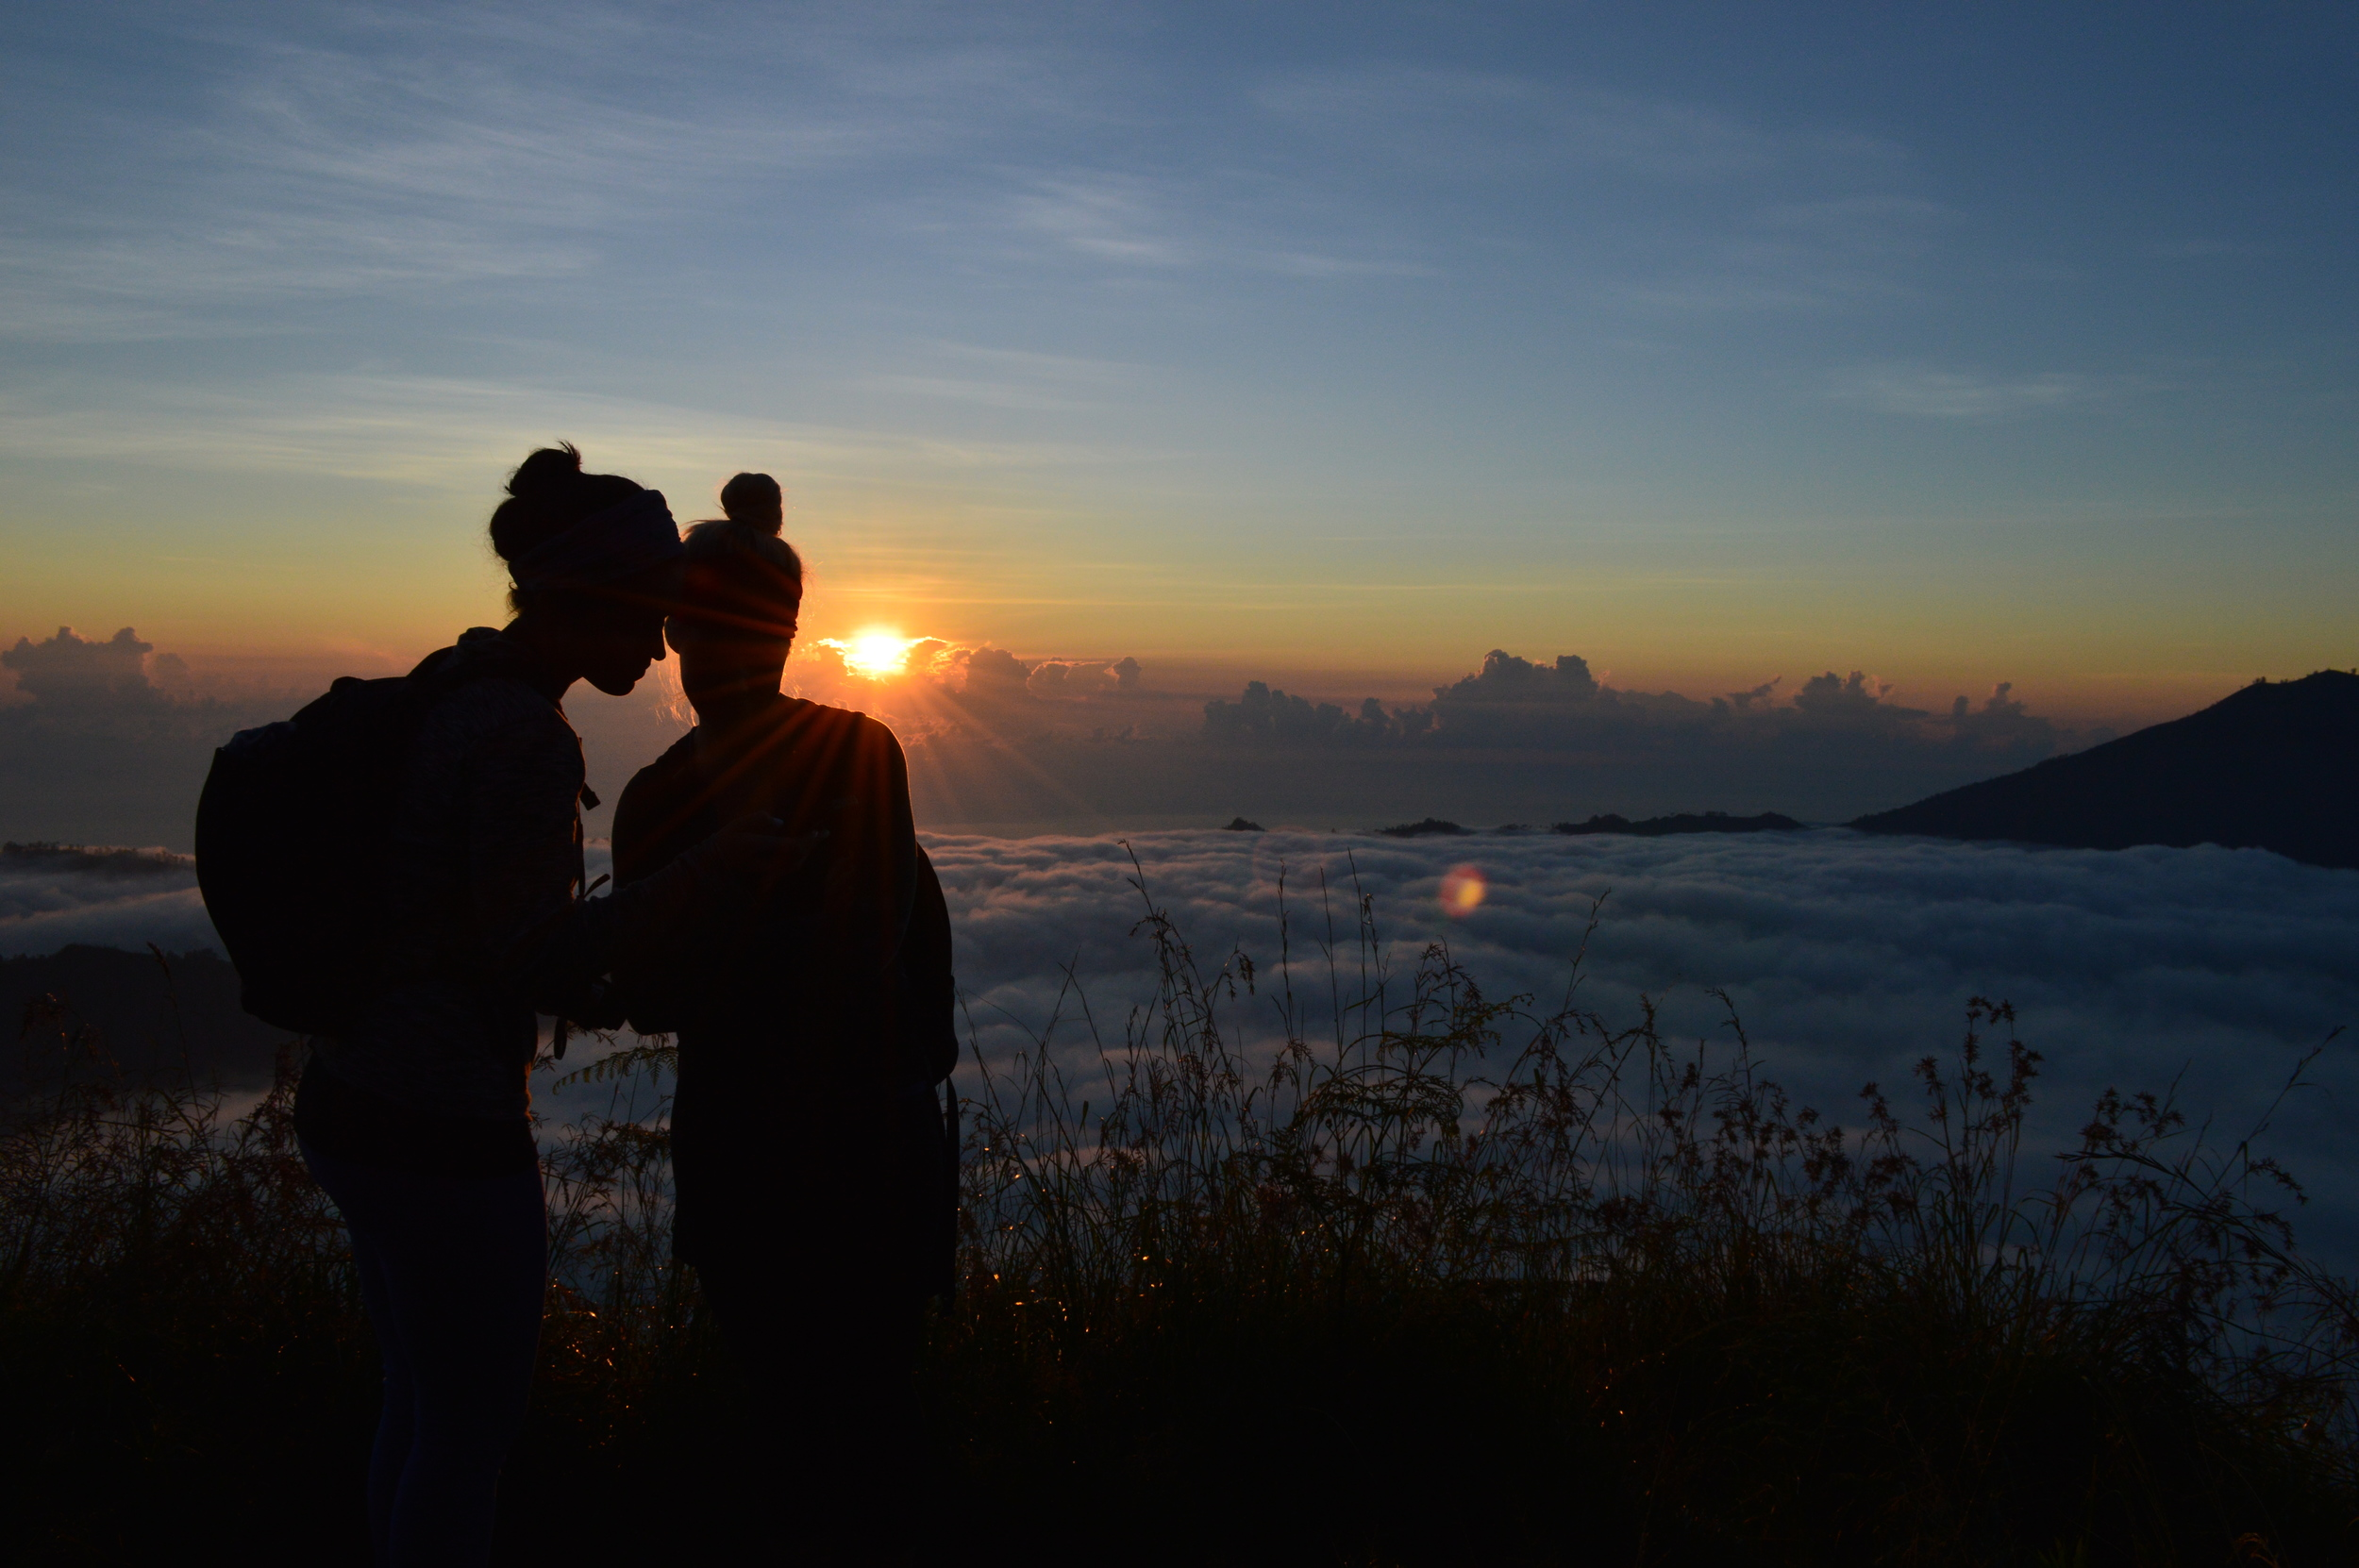 Sunrise - the view from the top of Mt. Batur.